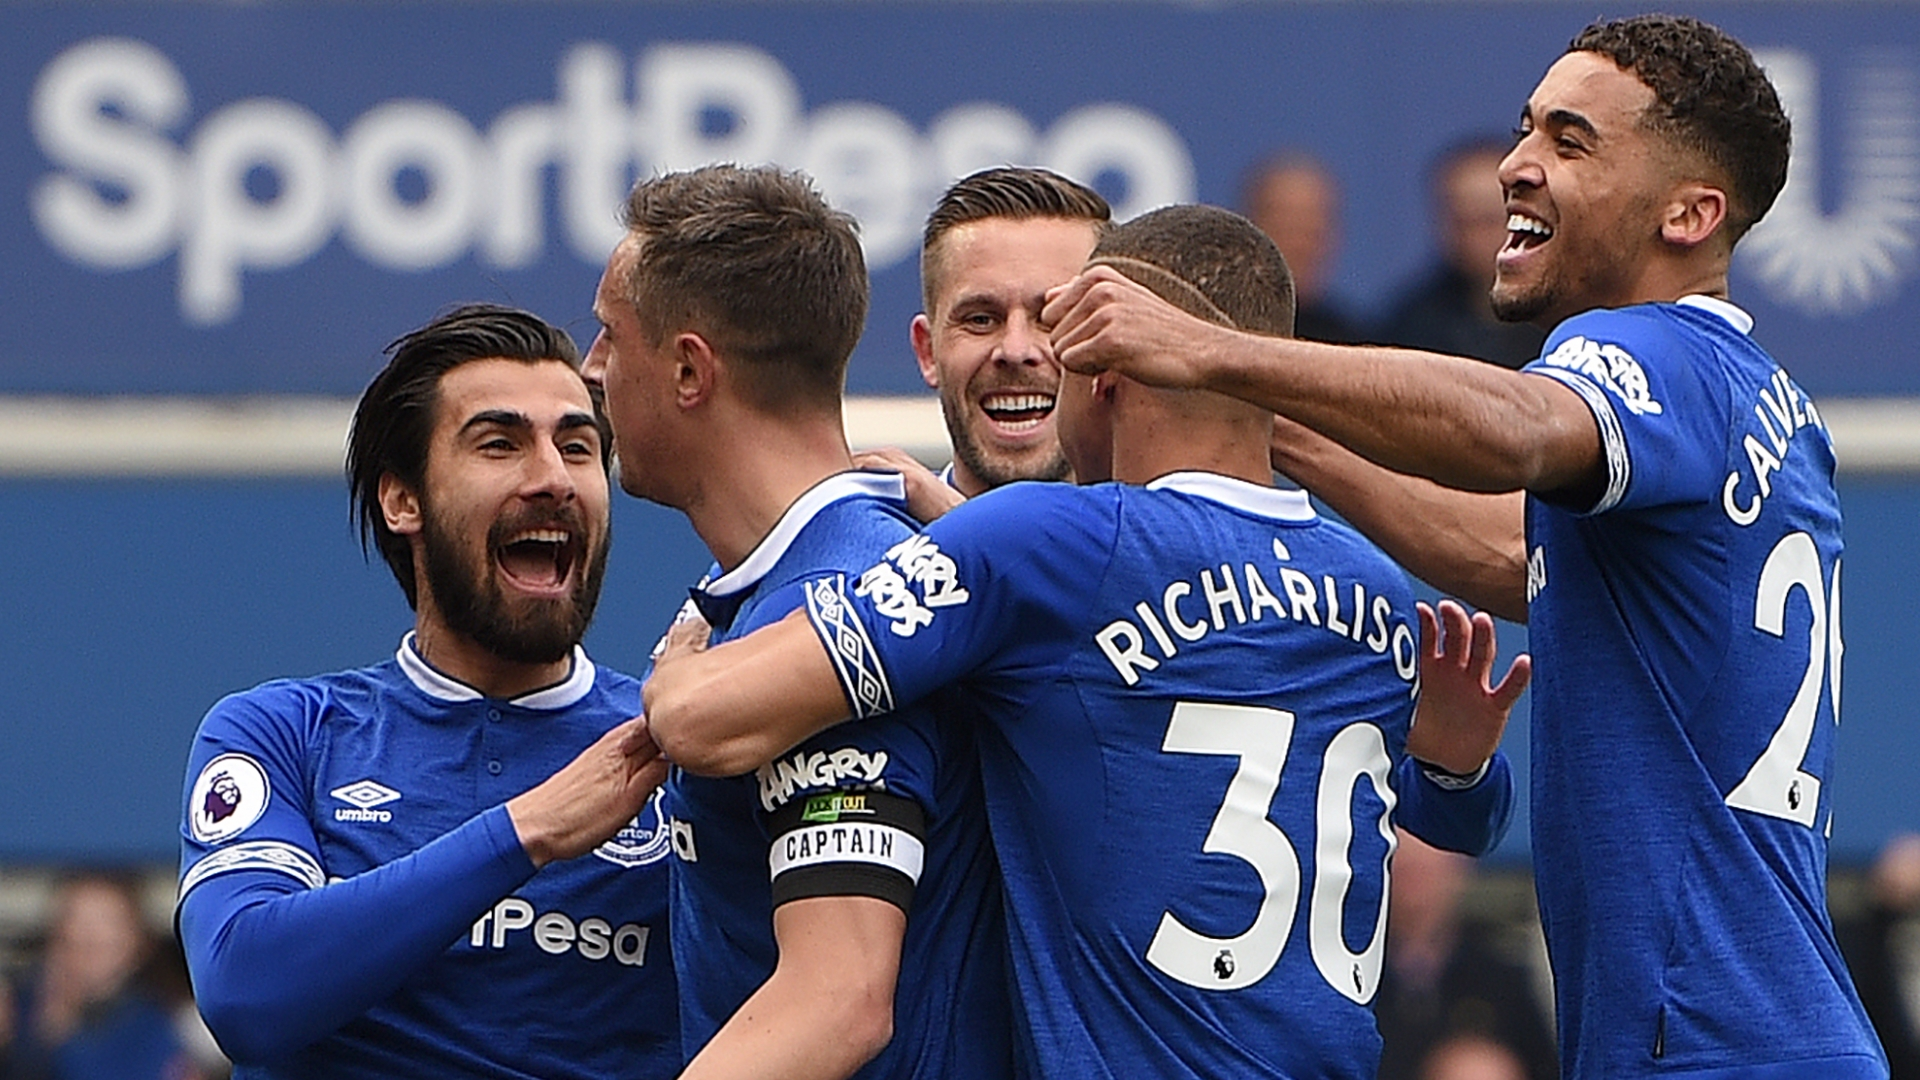 Everton celebrate Phil Jagielka's goal vs Arsenal, Premier League, 2018-19